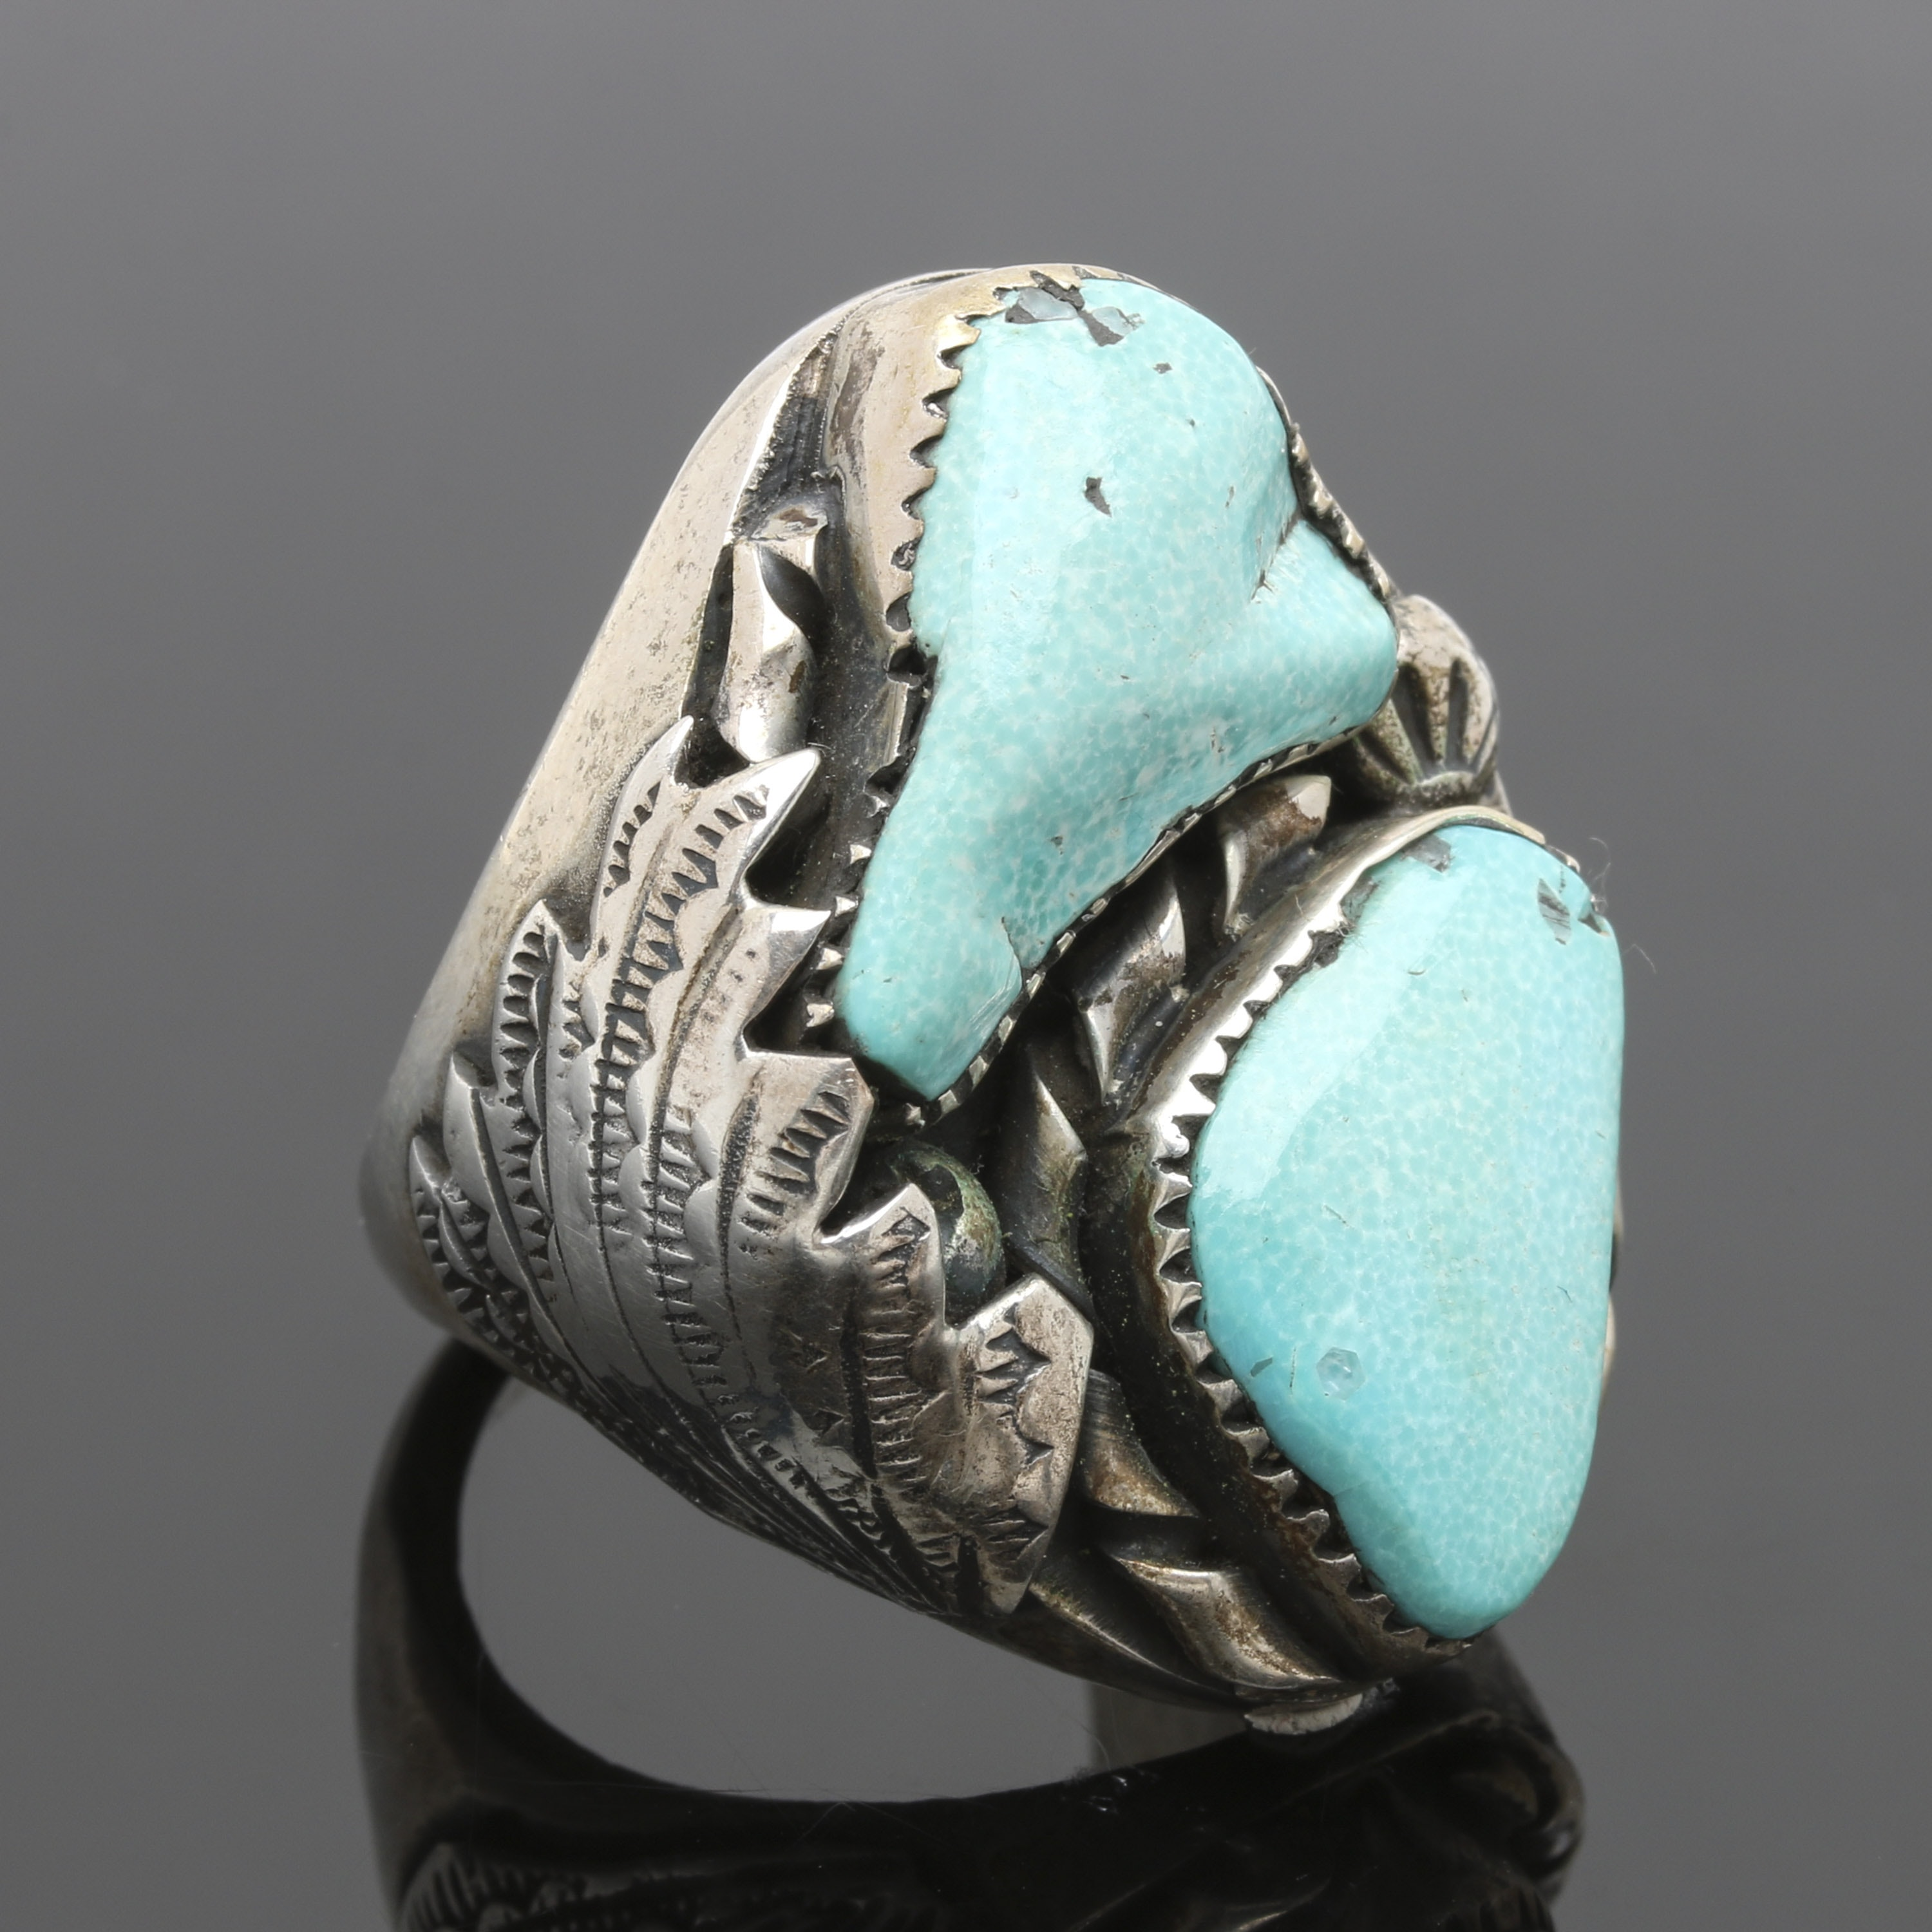 Southwestern Styled Sterling Silver Turquoise Ring